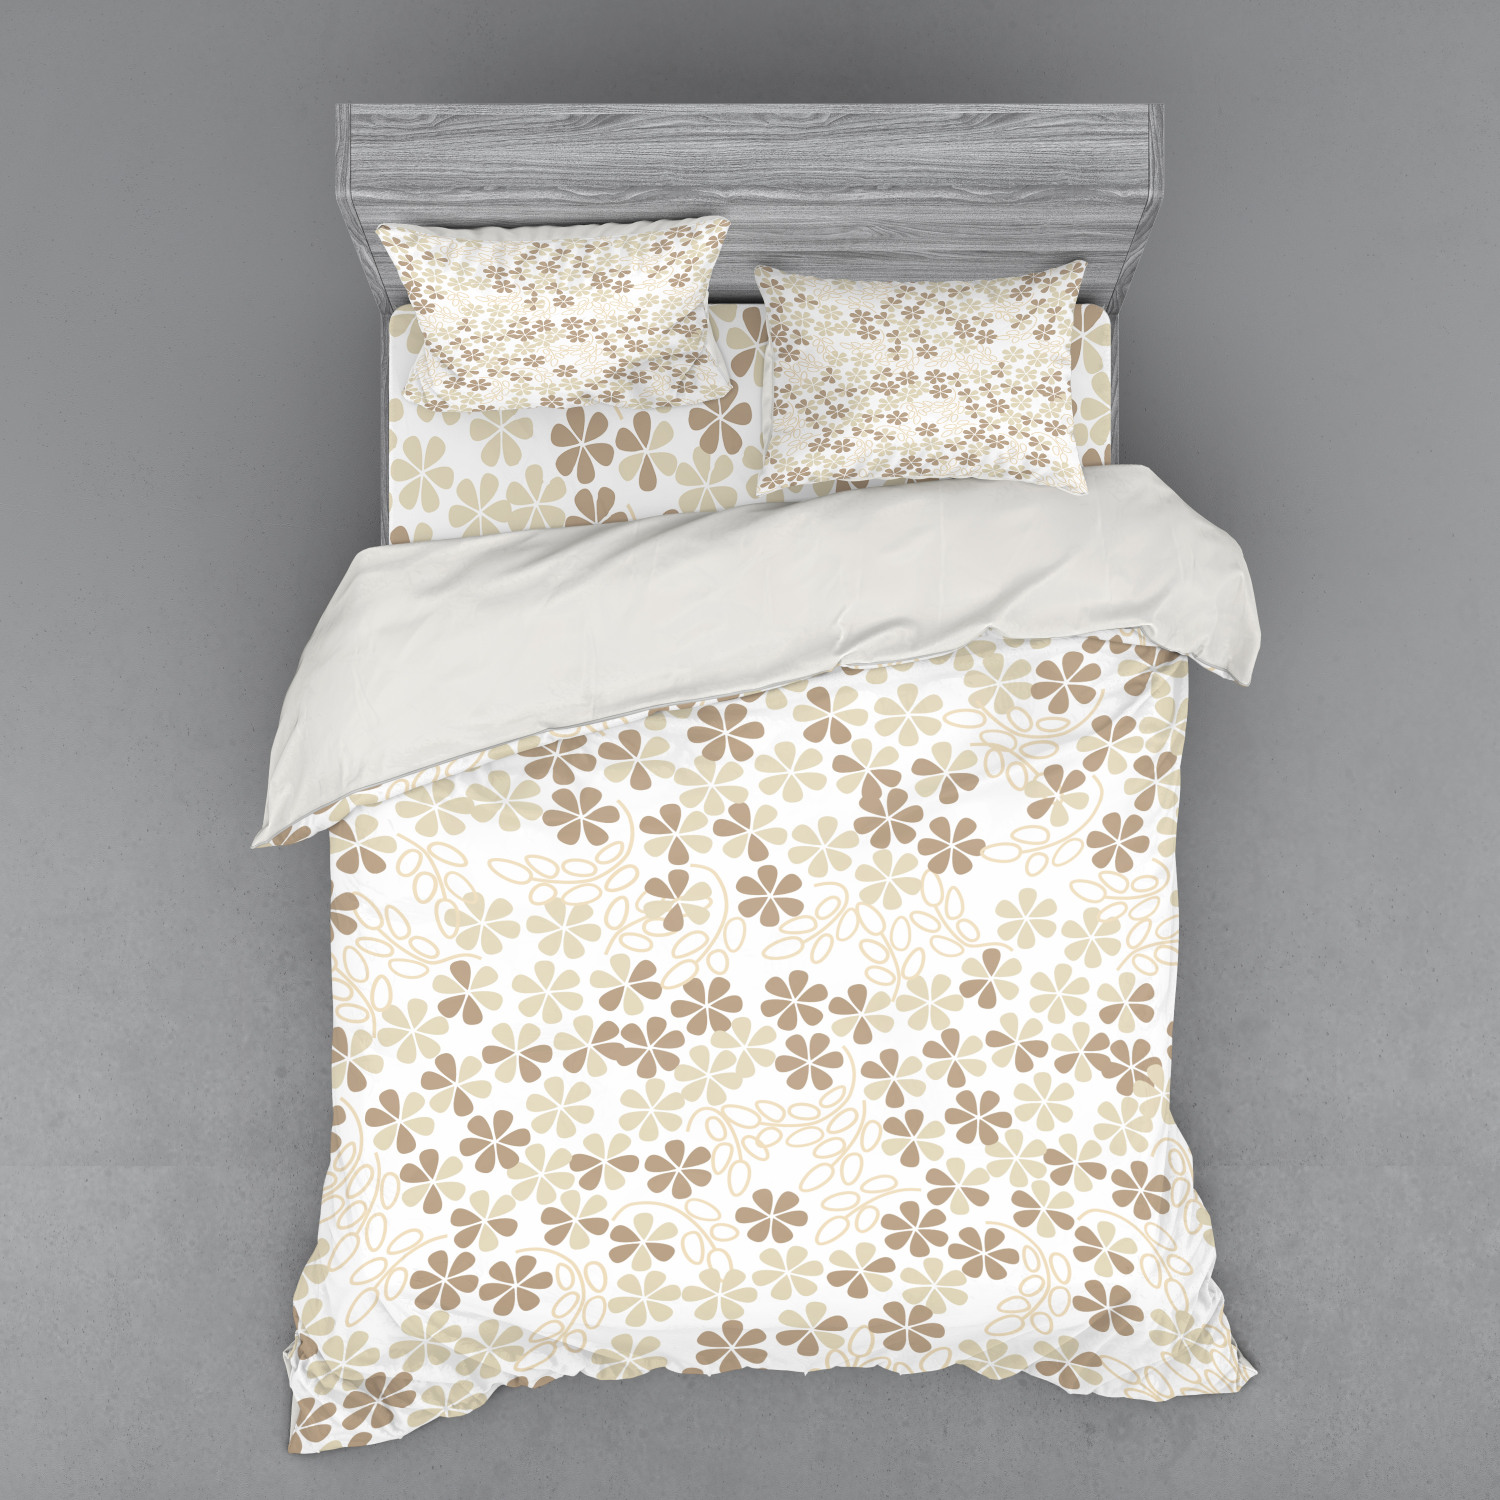 thumbnail 86 - Ambesonne Summer Bedding Set Duvet Cover Sham Fitted Sheet in 3 Sizes